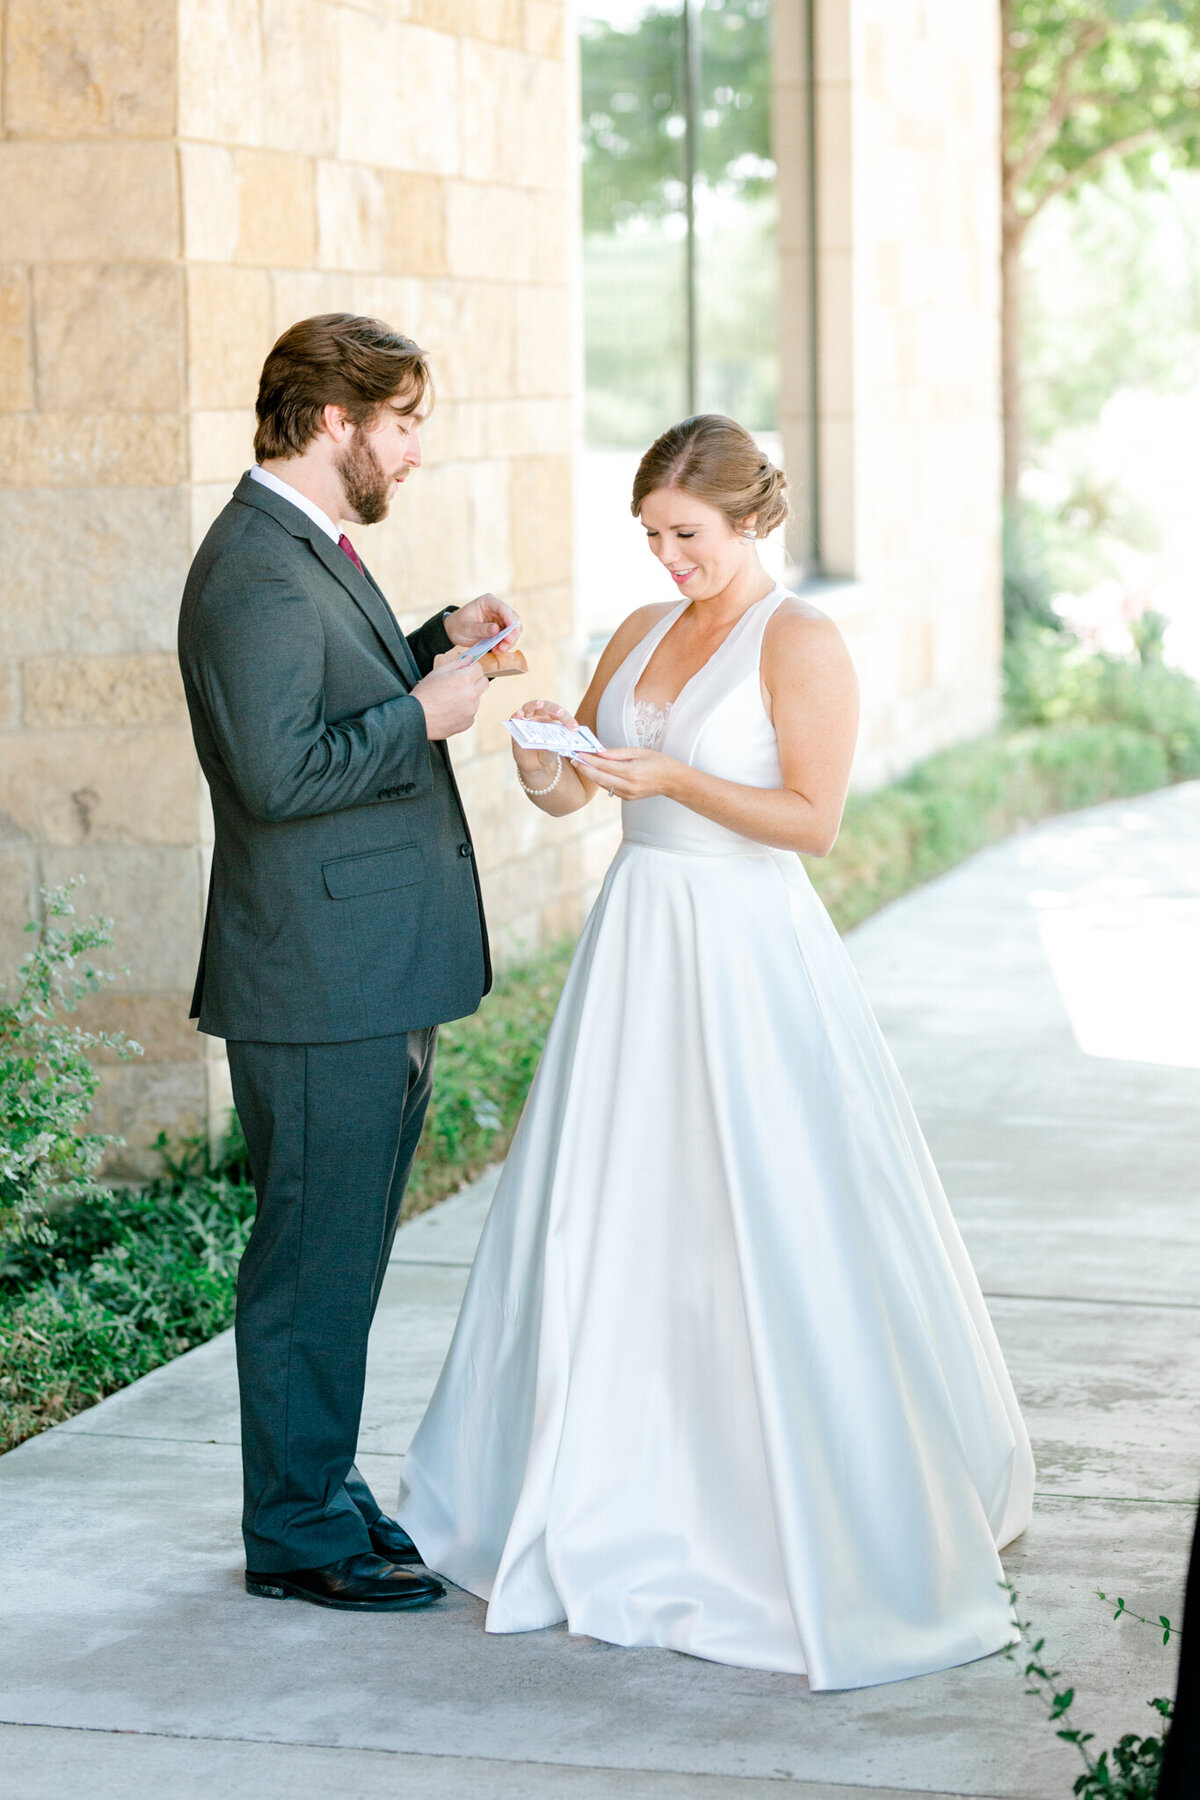 Kaylee & Michael's Wedding at Watermark Community Church | Dallas Wedding Photographer | Sami Kathryn Photography-44